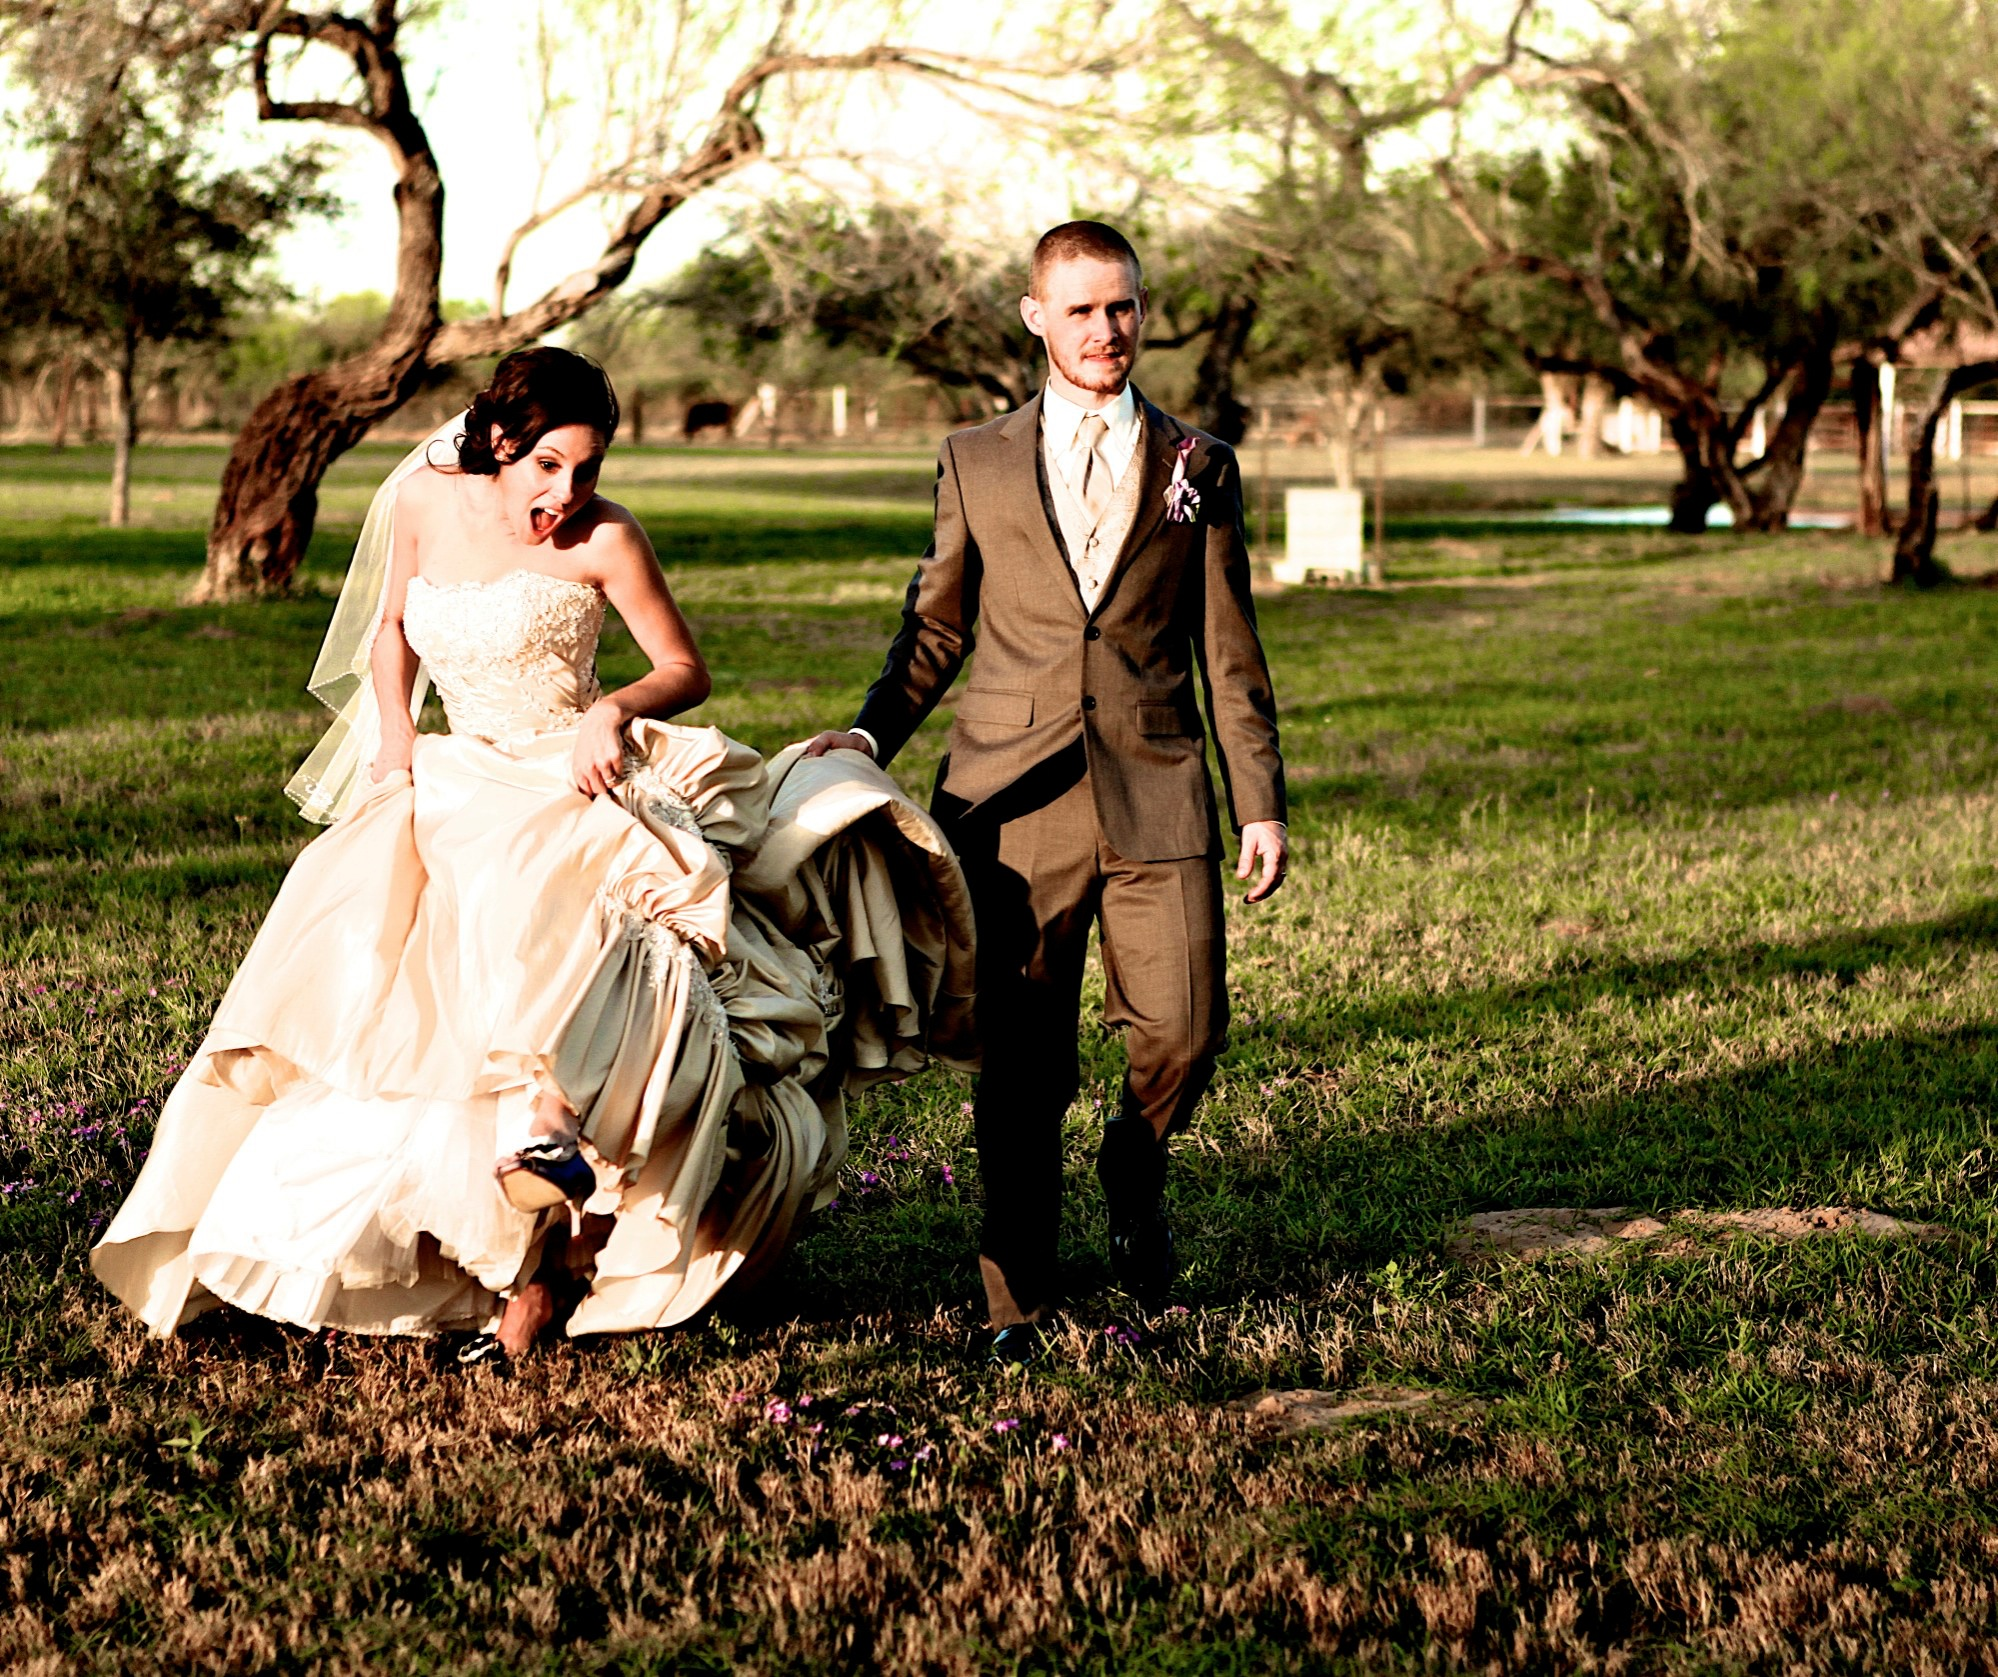 kelli-leslie-photography-480-818-1018-0096